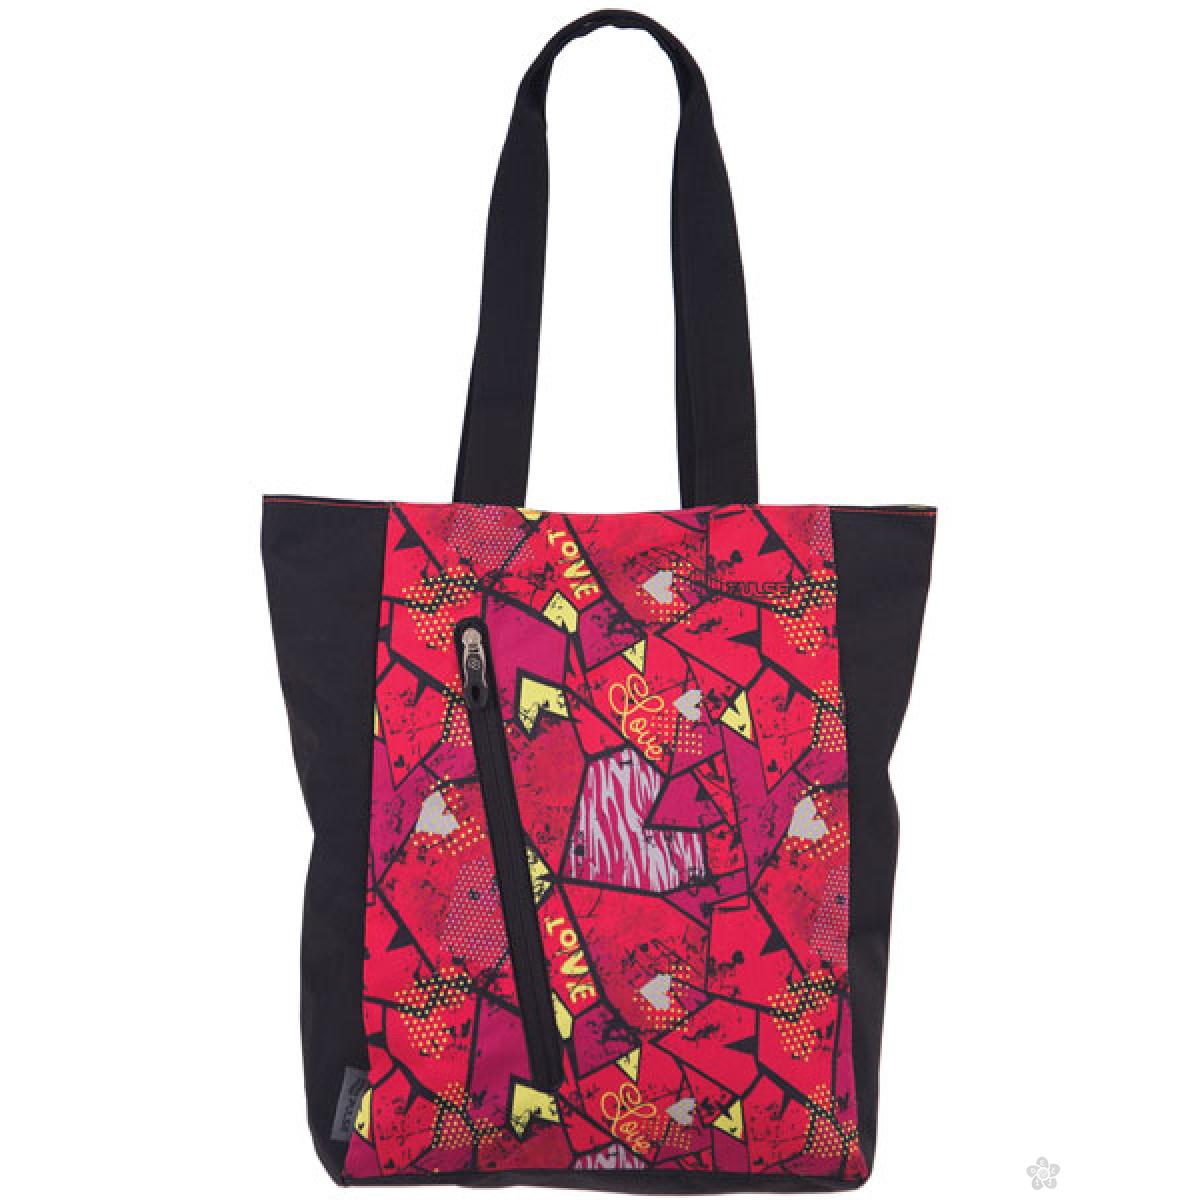 Shopping bag Cots Square Heart